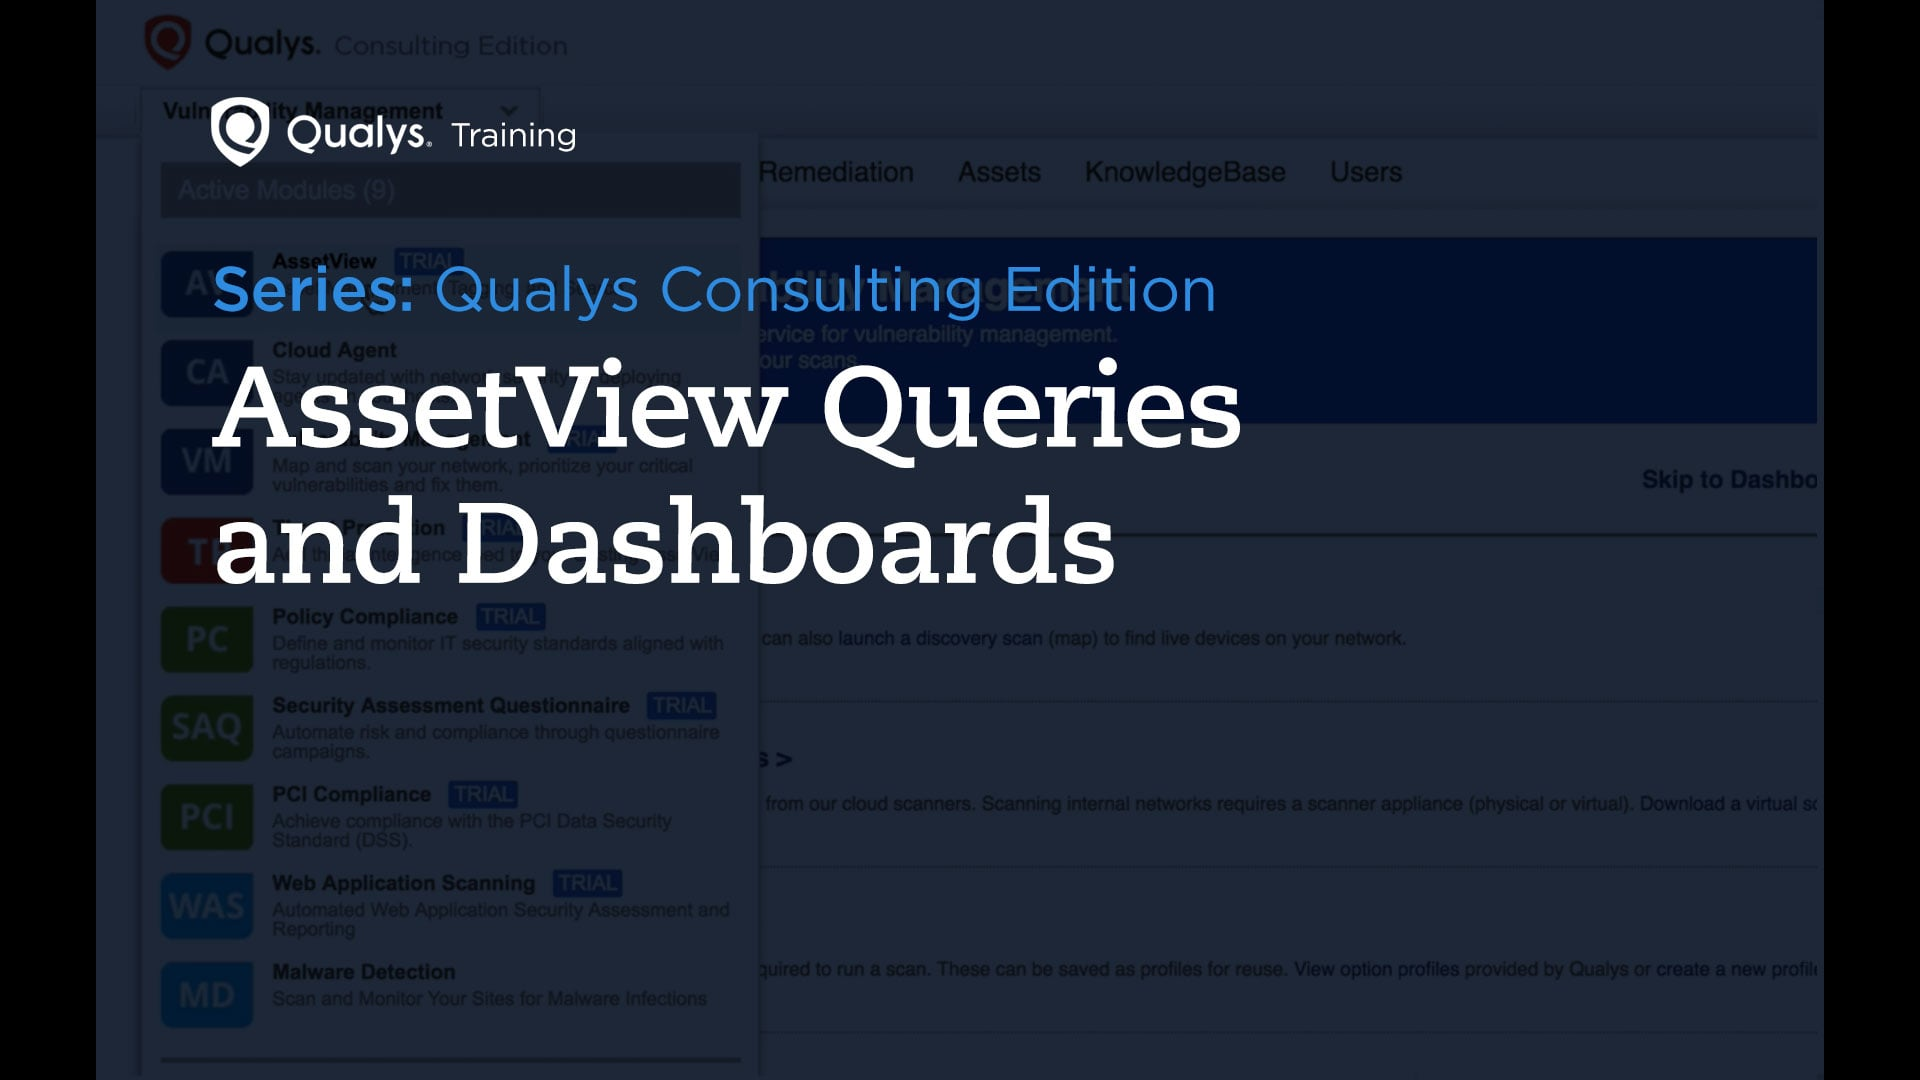 AssetView Queries and Dashboards - Qualys Consulting Edition